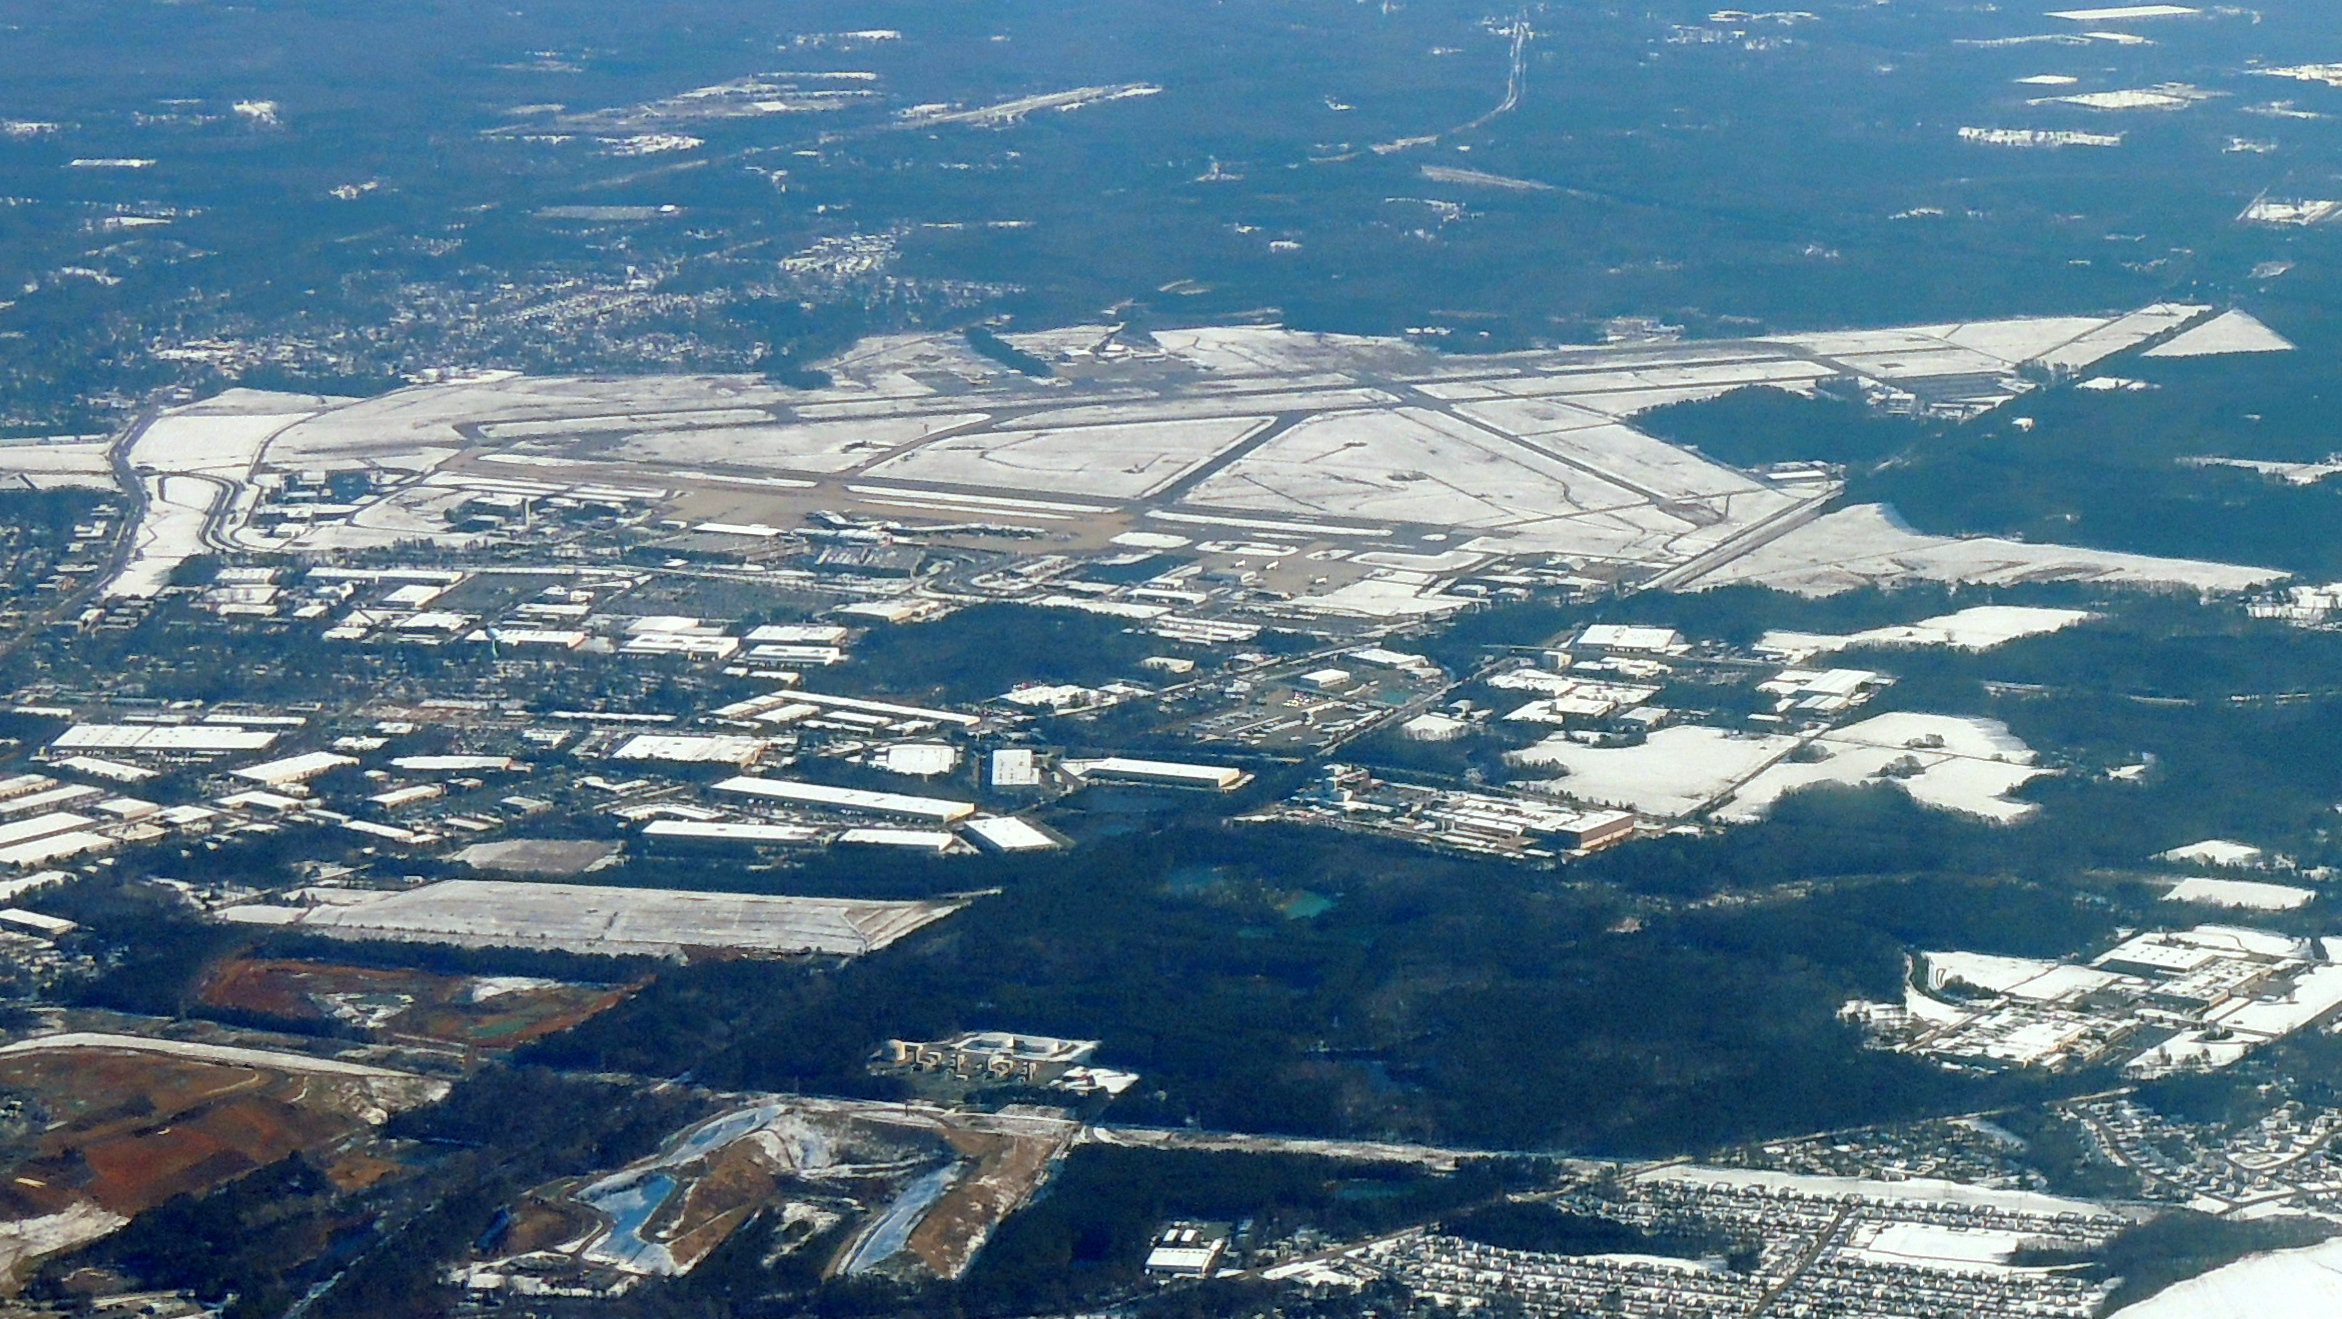 Snow on the ground at Richmond International (RIC)